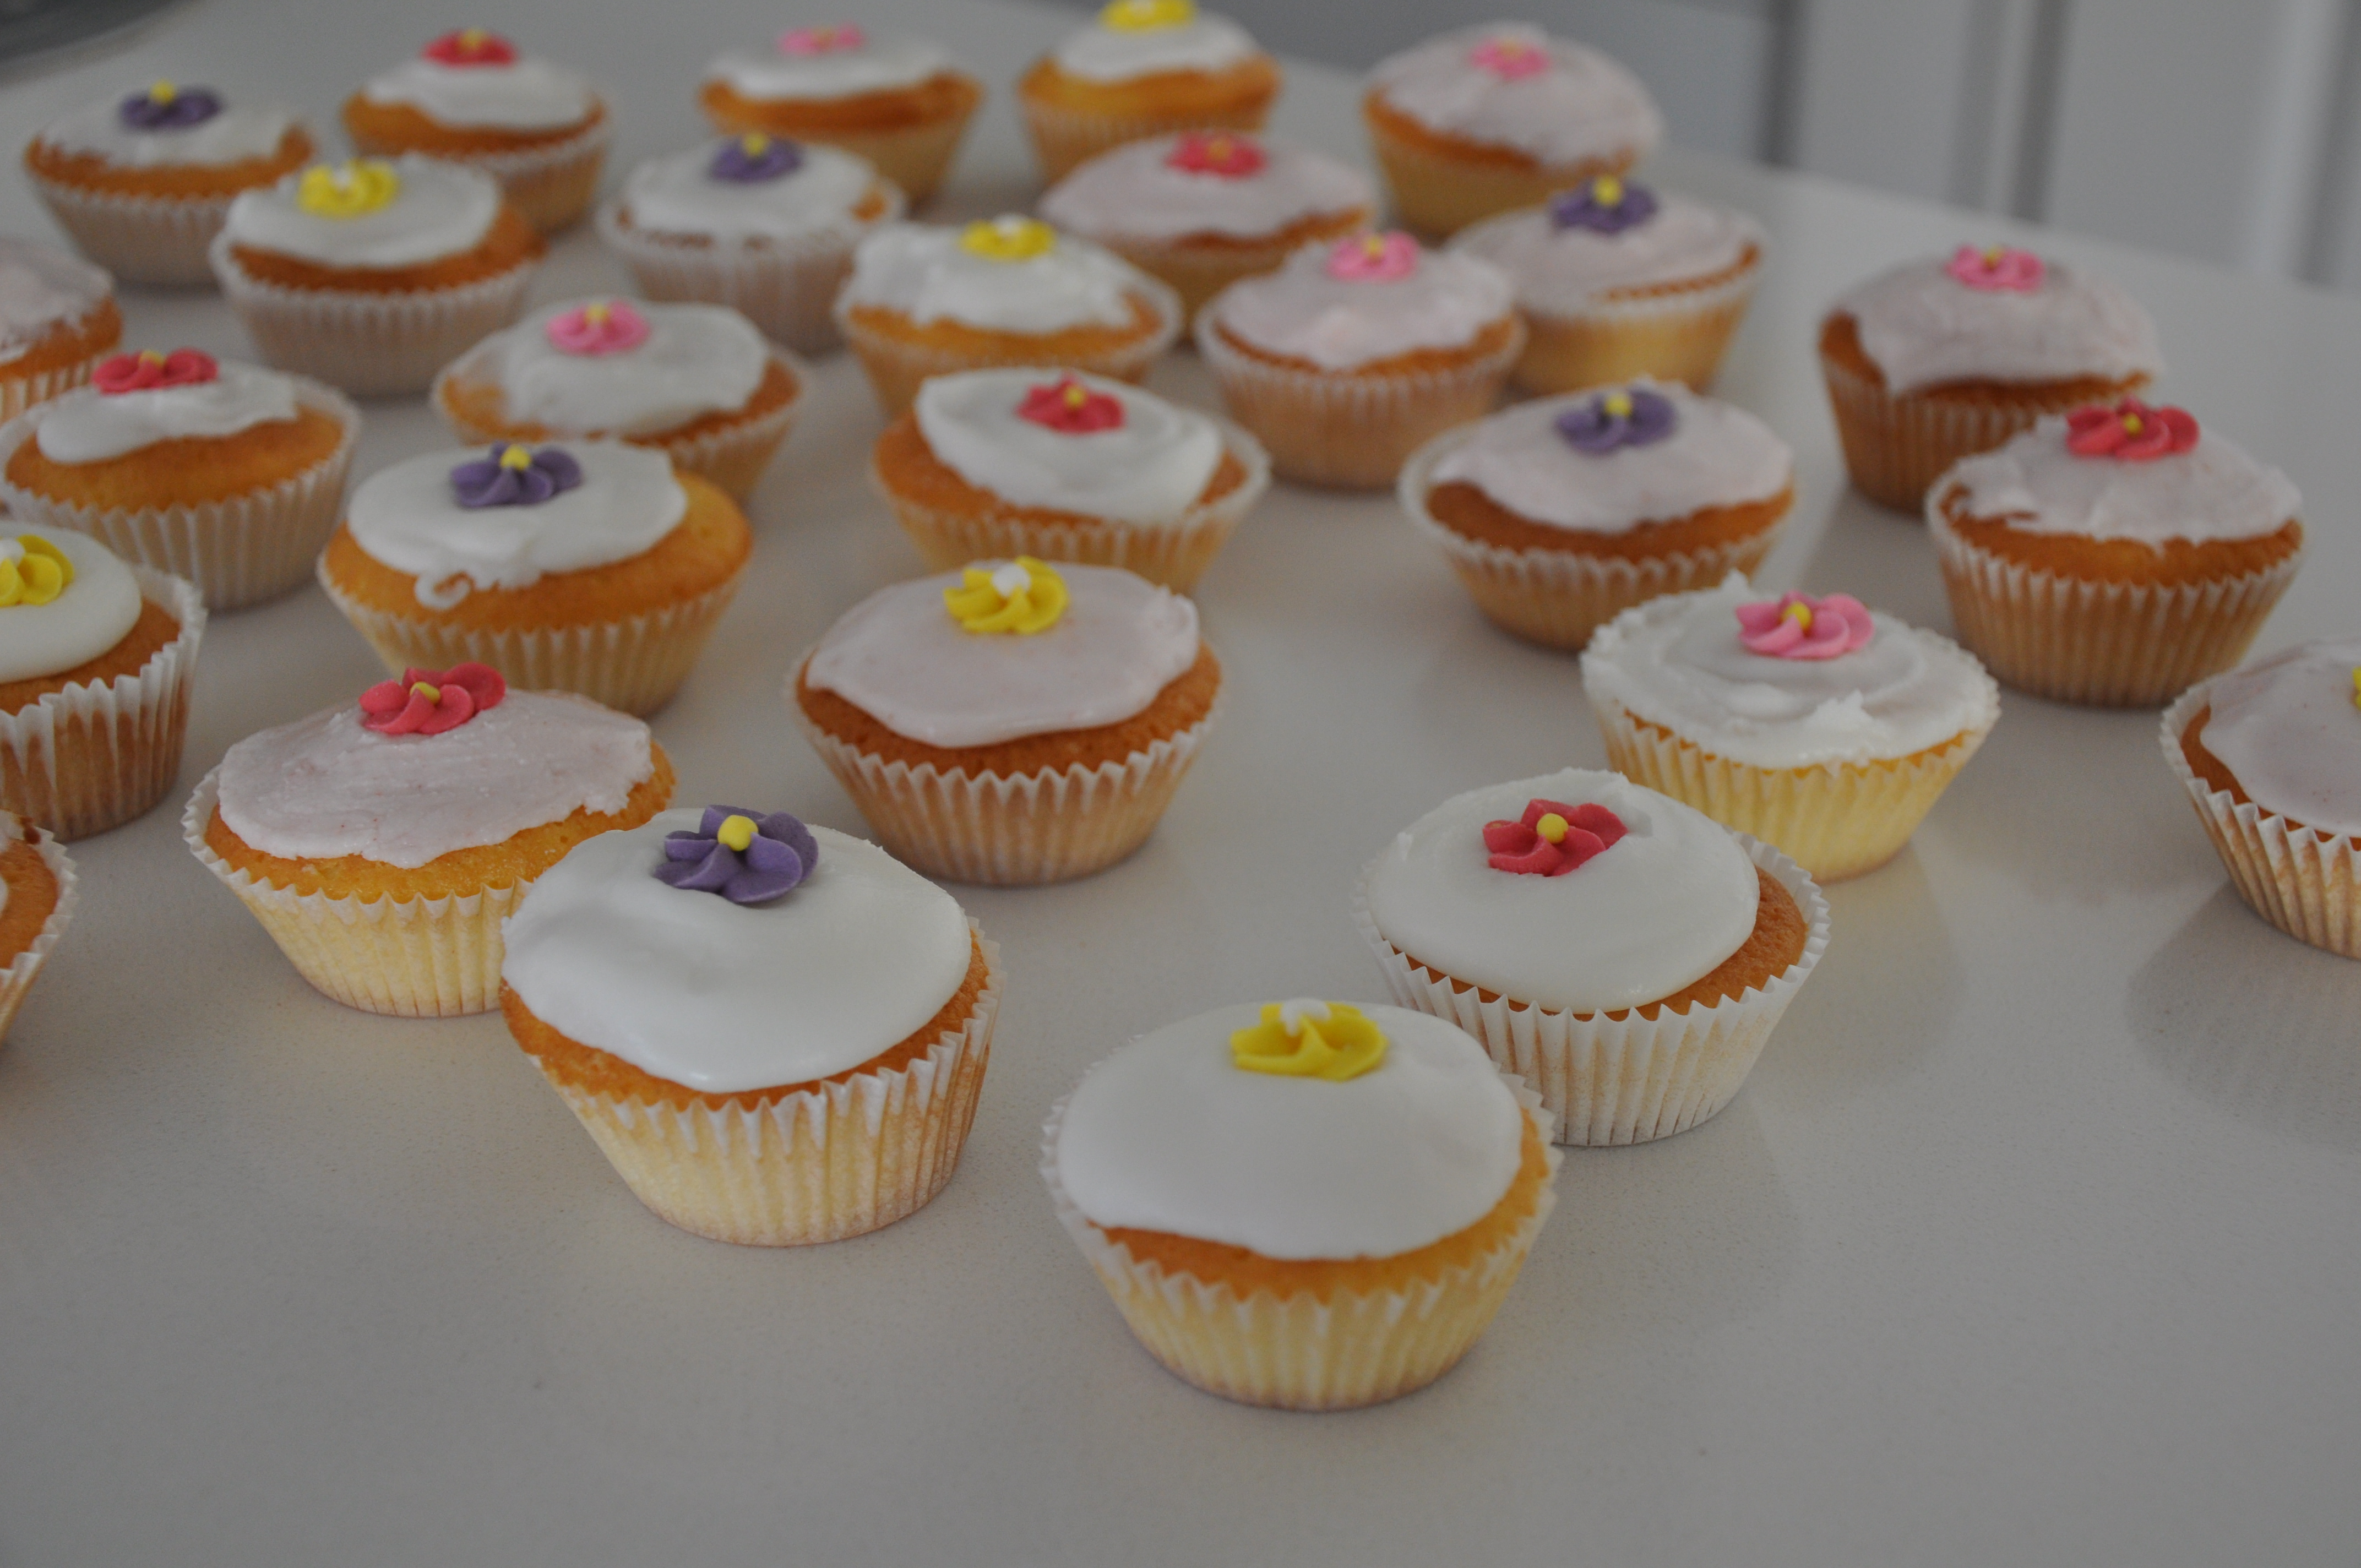 Cupcake Decorating Ideas With Royal Icing : recipe: nigella lawson cupcakes with royal icing ...